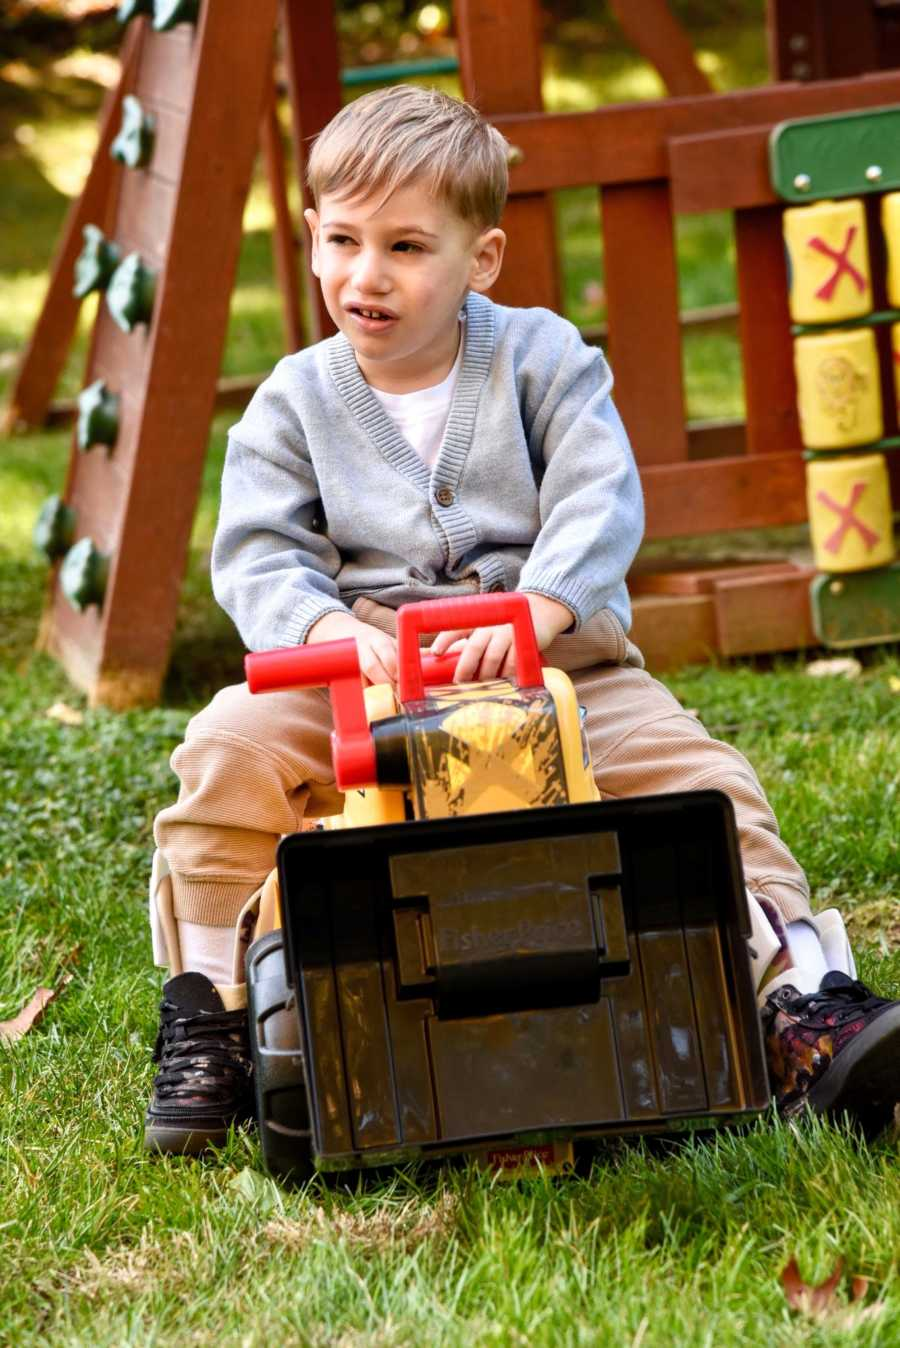 Young boy in gray sweater sits on a toy truck outside on a playground